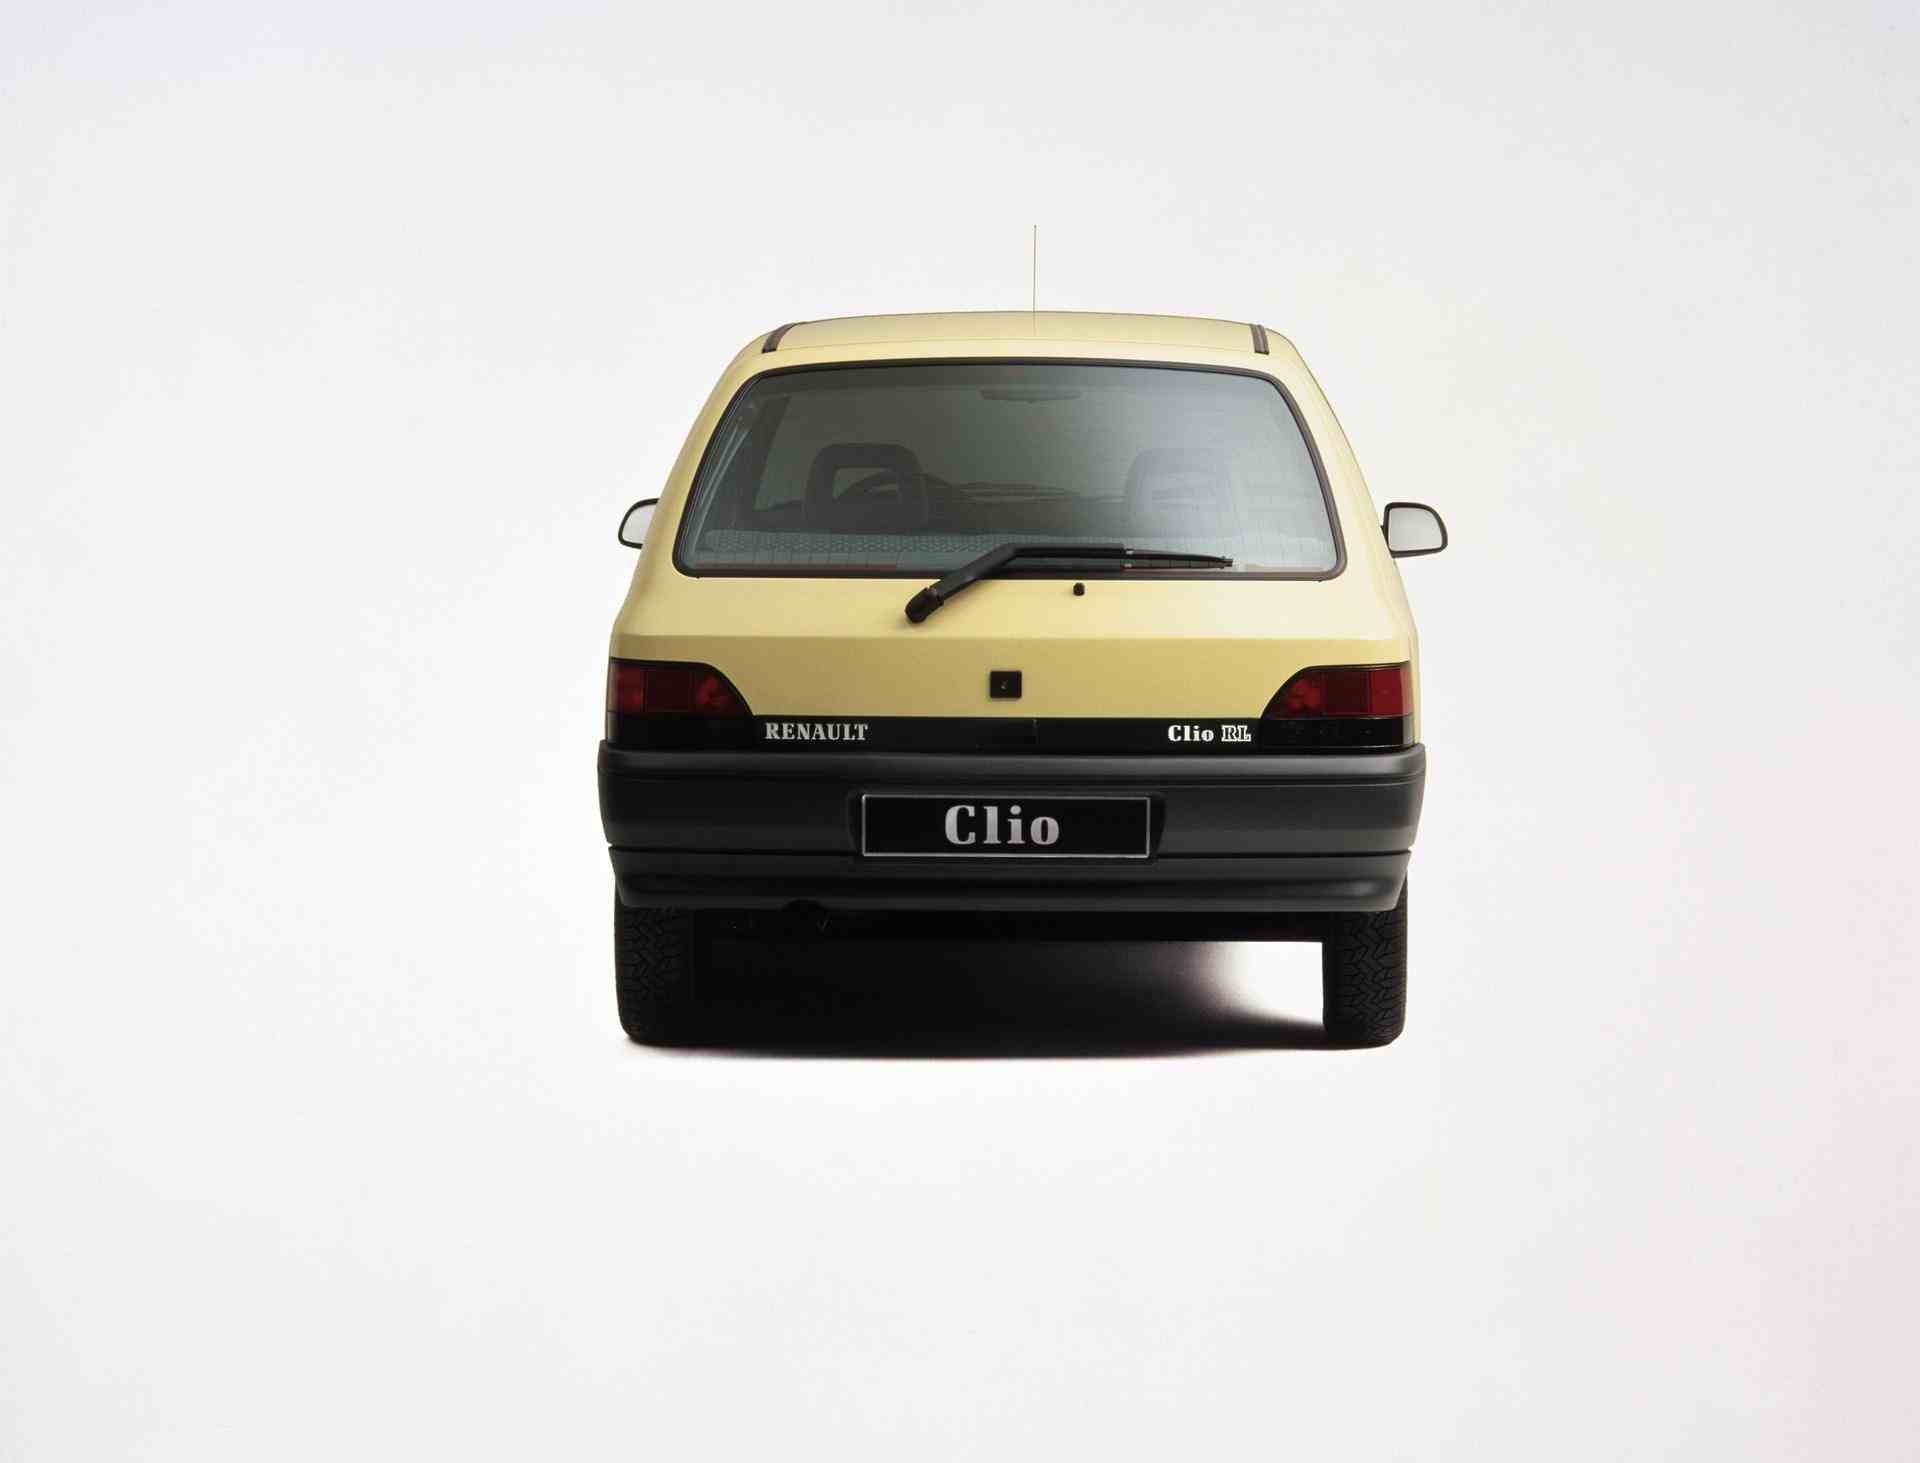 2020-30-years-of-Renault-CLIO-Renault-CLIO-I-1990-1999-4